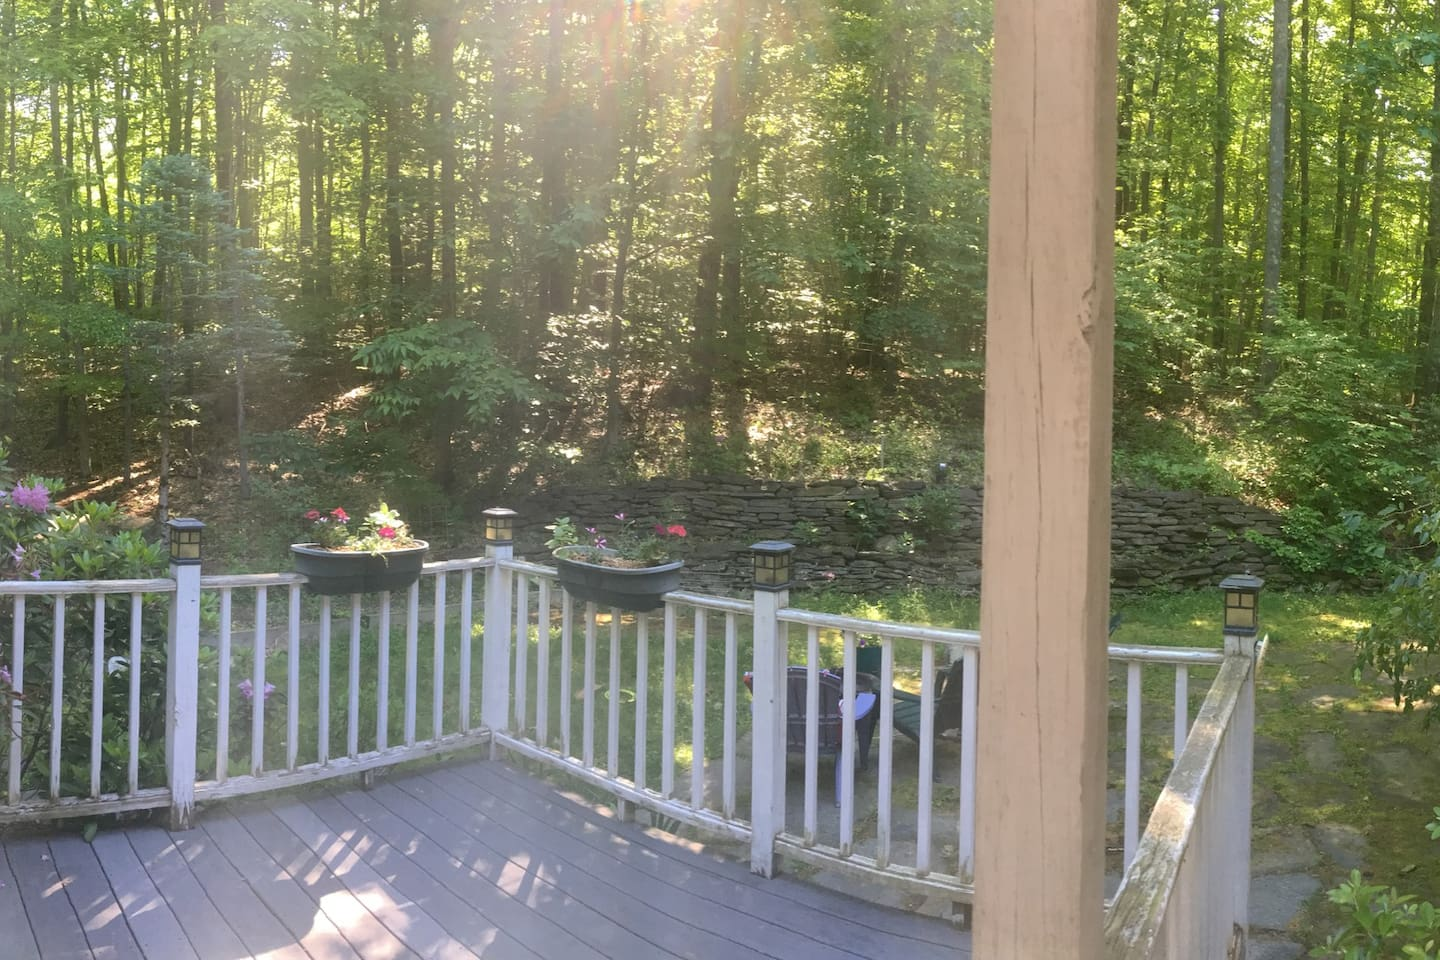 View of deck and backyard